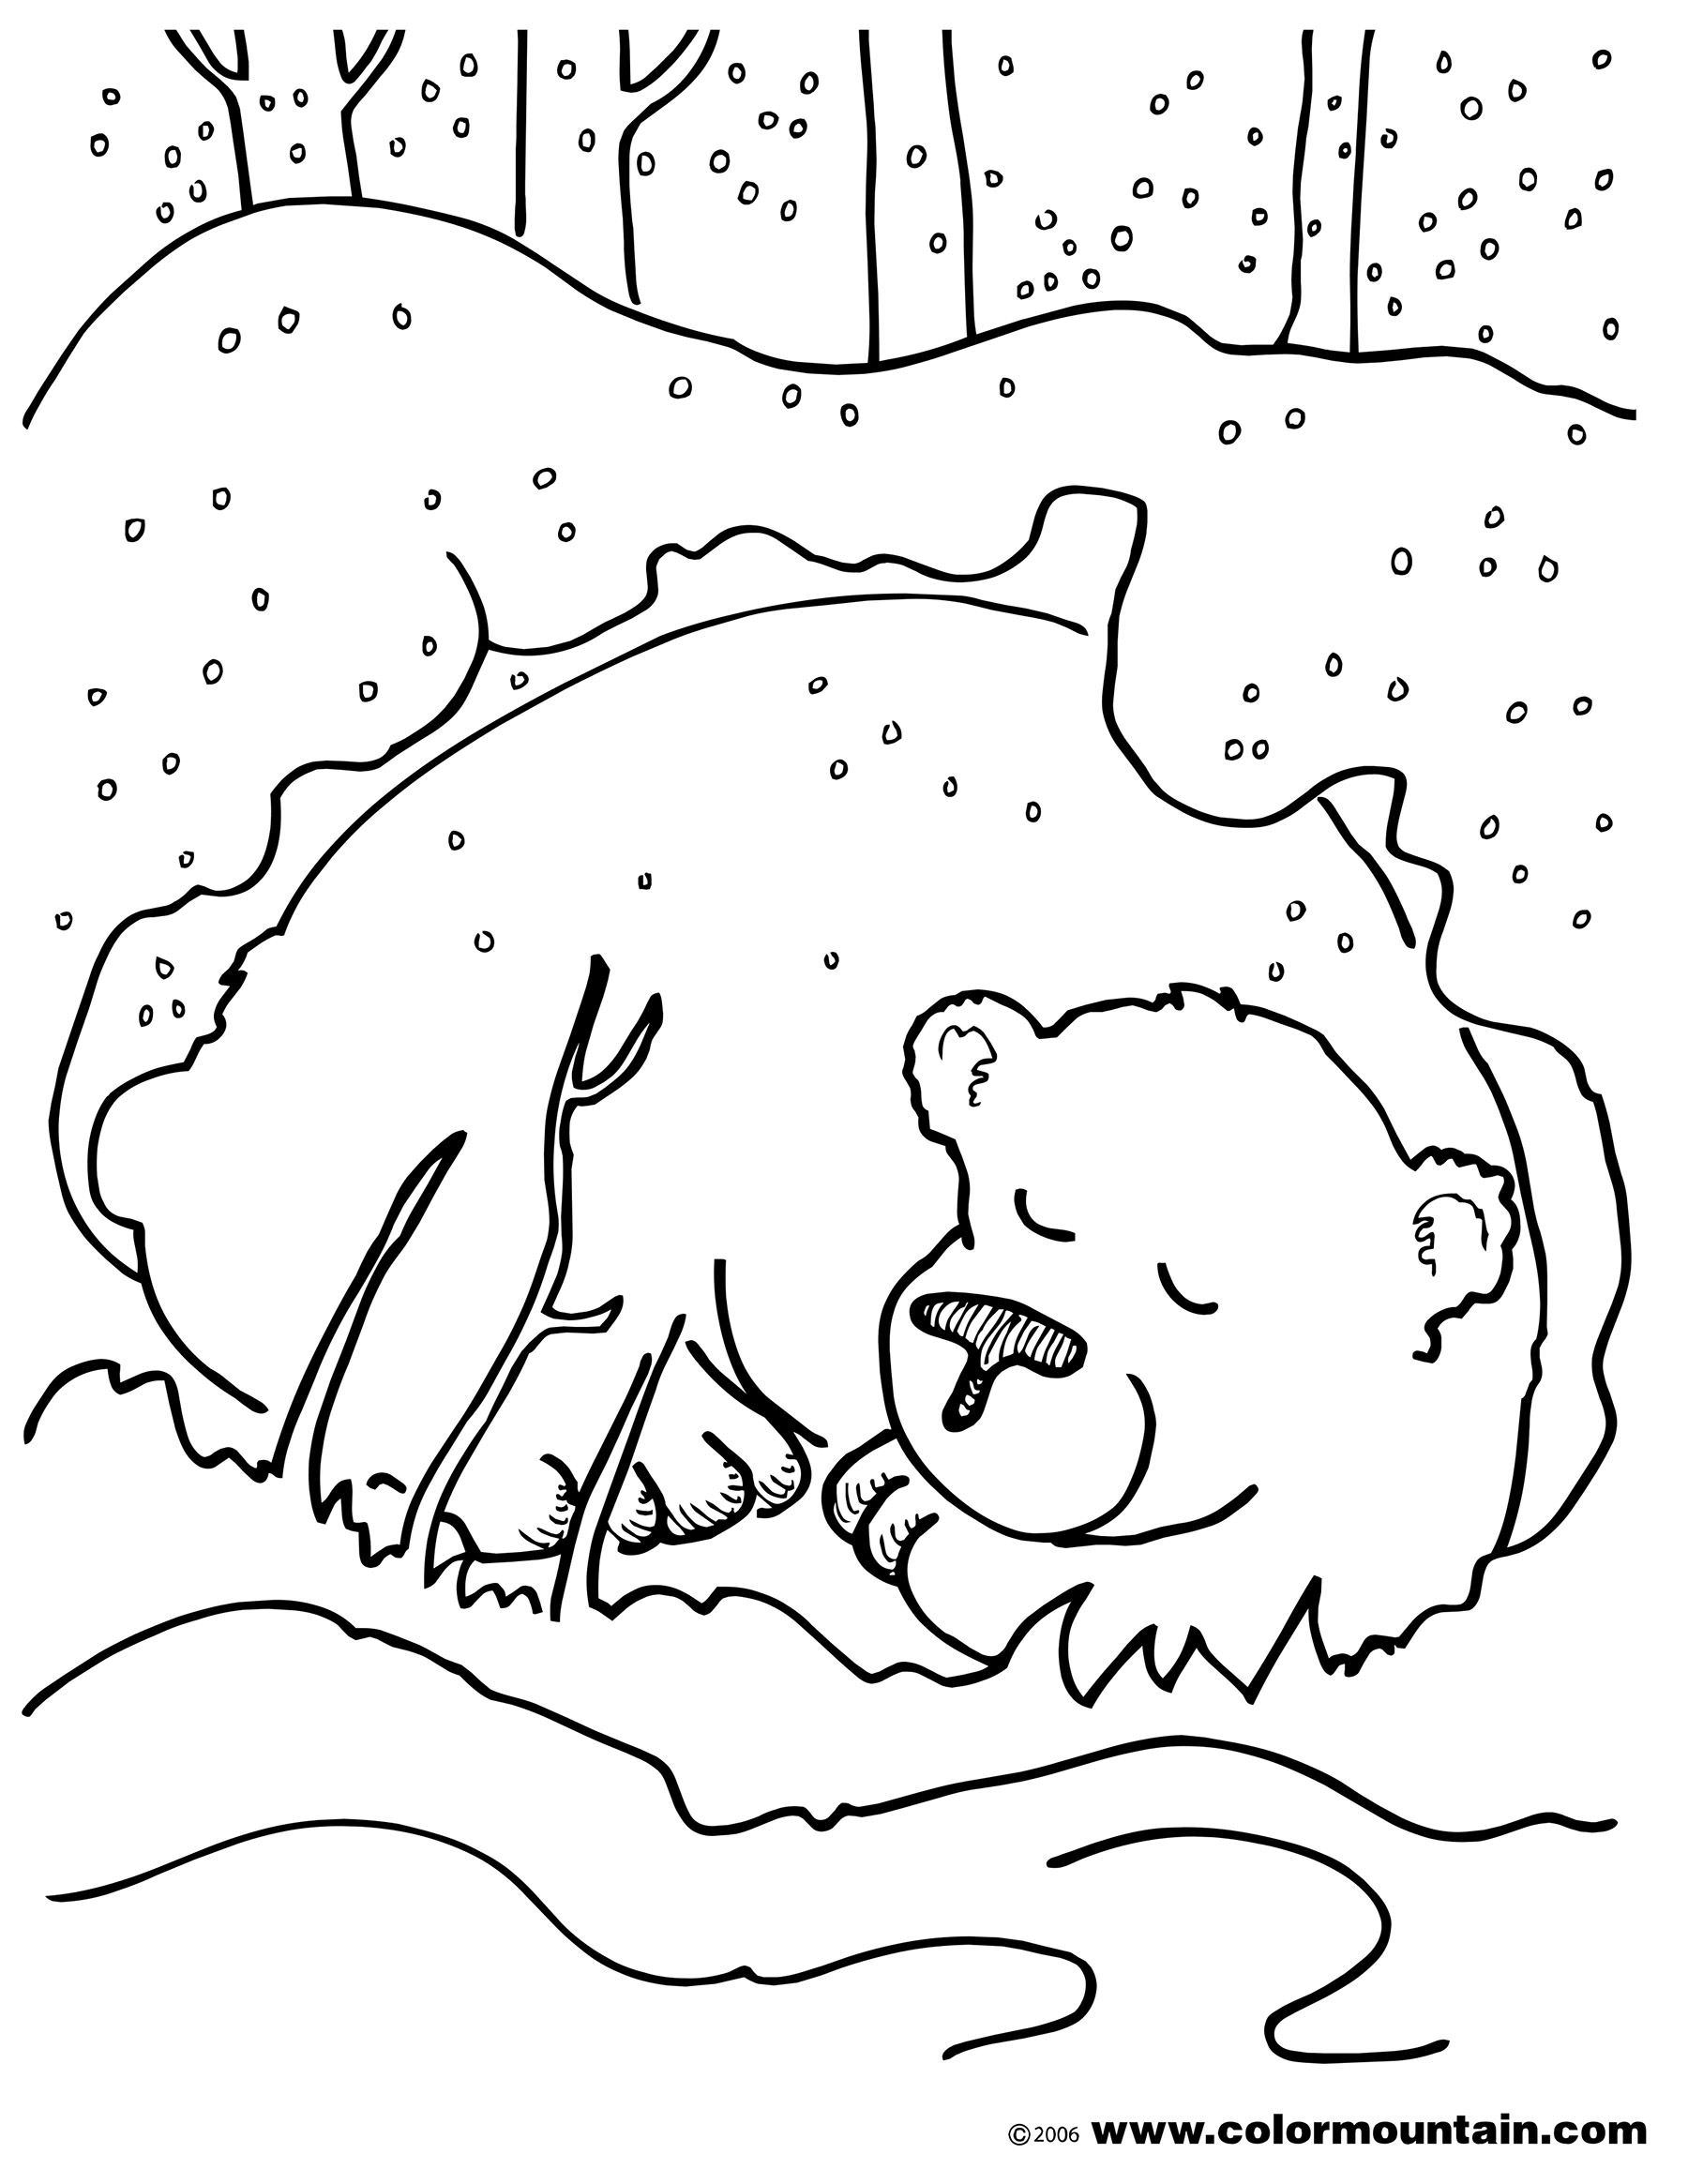 Yogi Bear Christmas Coloring Pages With Hibernation Page 2018 Open